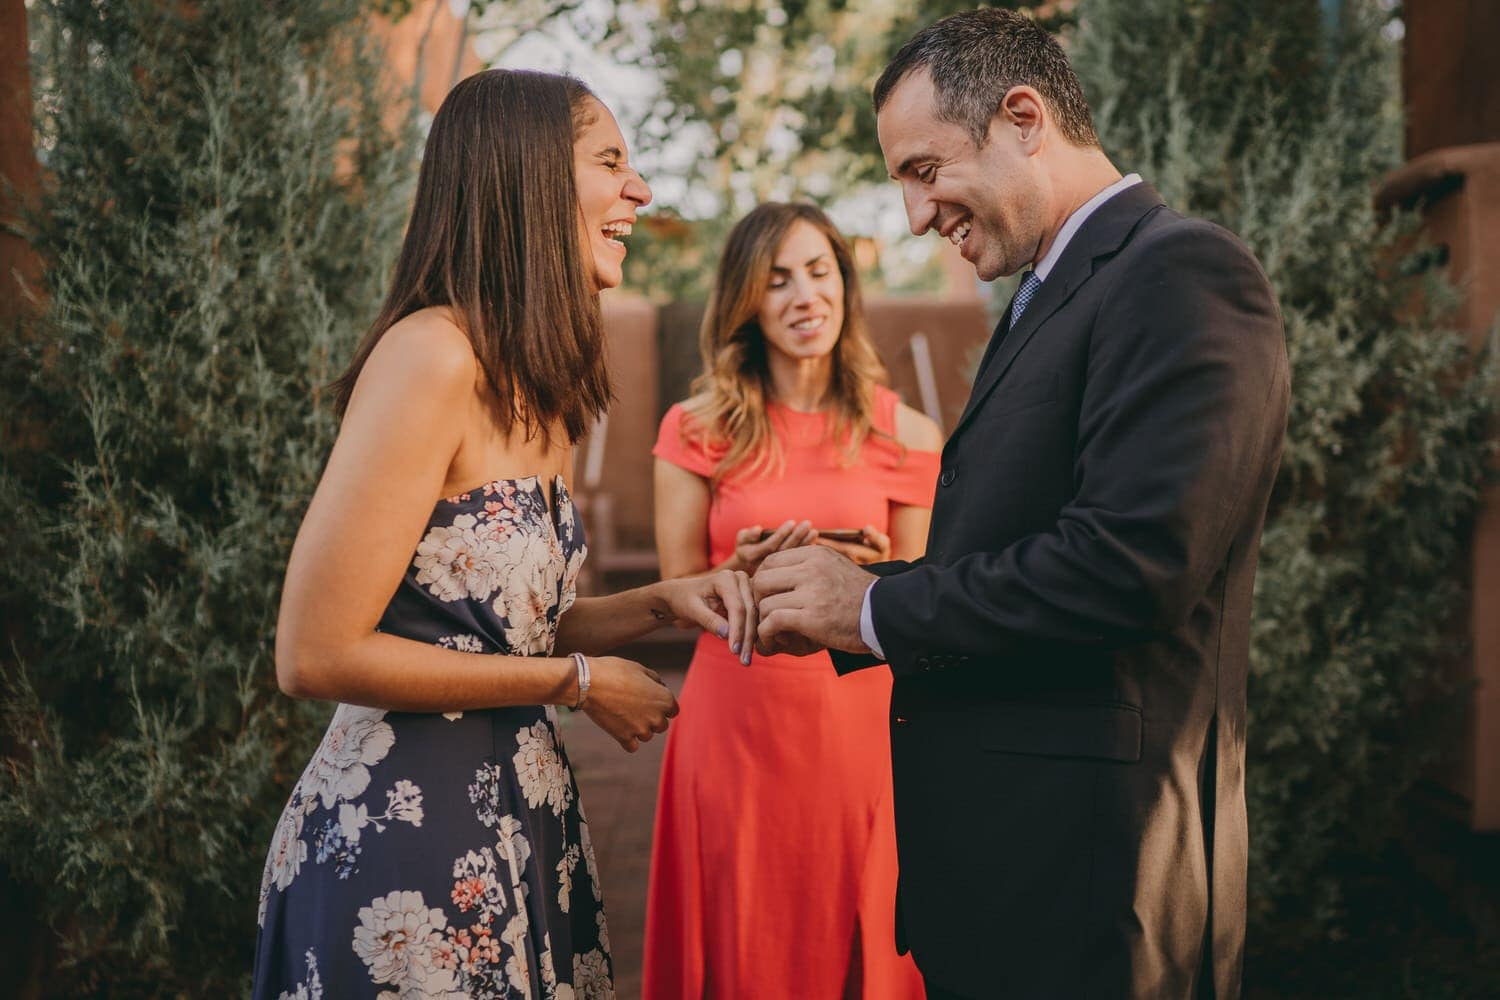 Wedding couple laughing as he slides a ring onto her finger